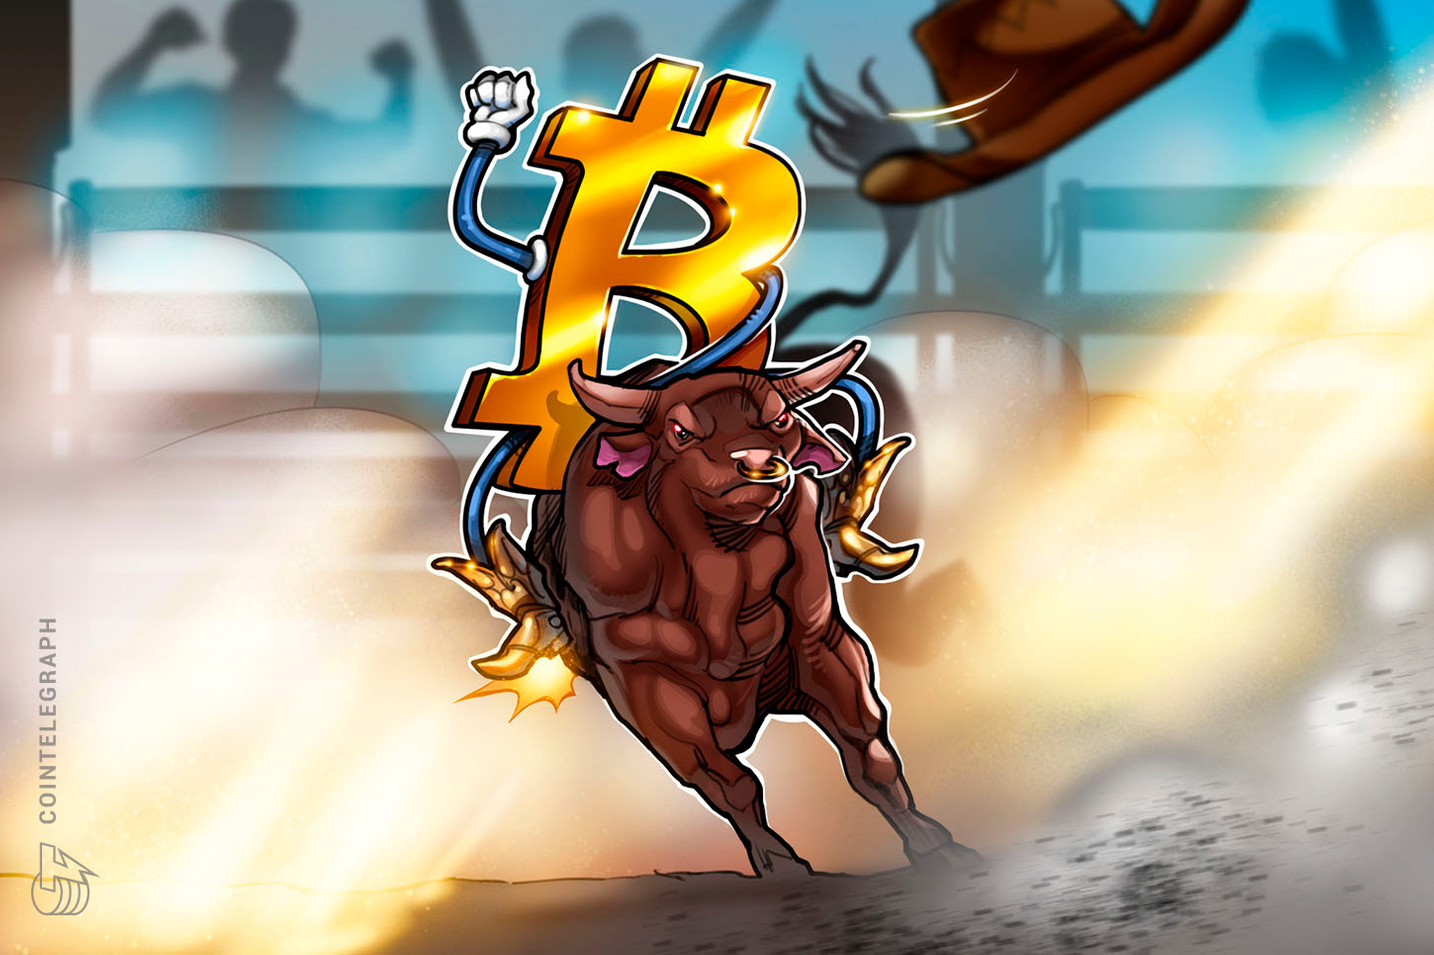 Bitcoin Market Dominance: From 66% to 33% and Up Again